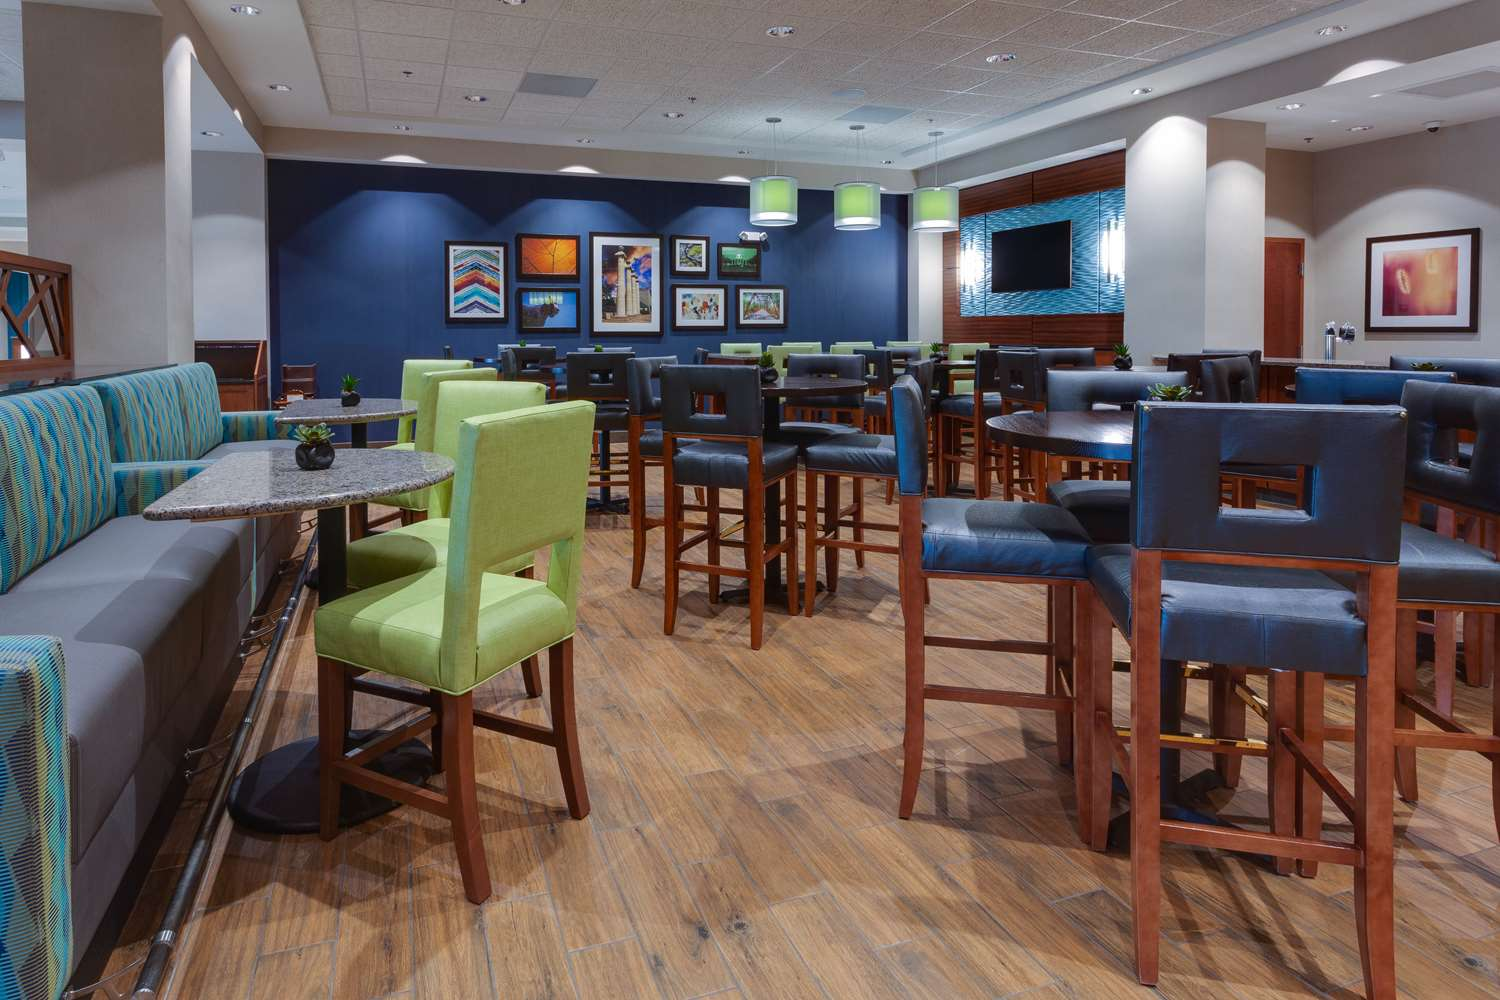 Restaurant - Drury Plaza Hotel East Columbia